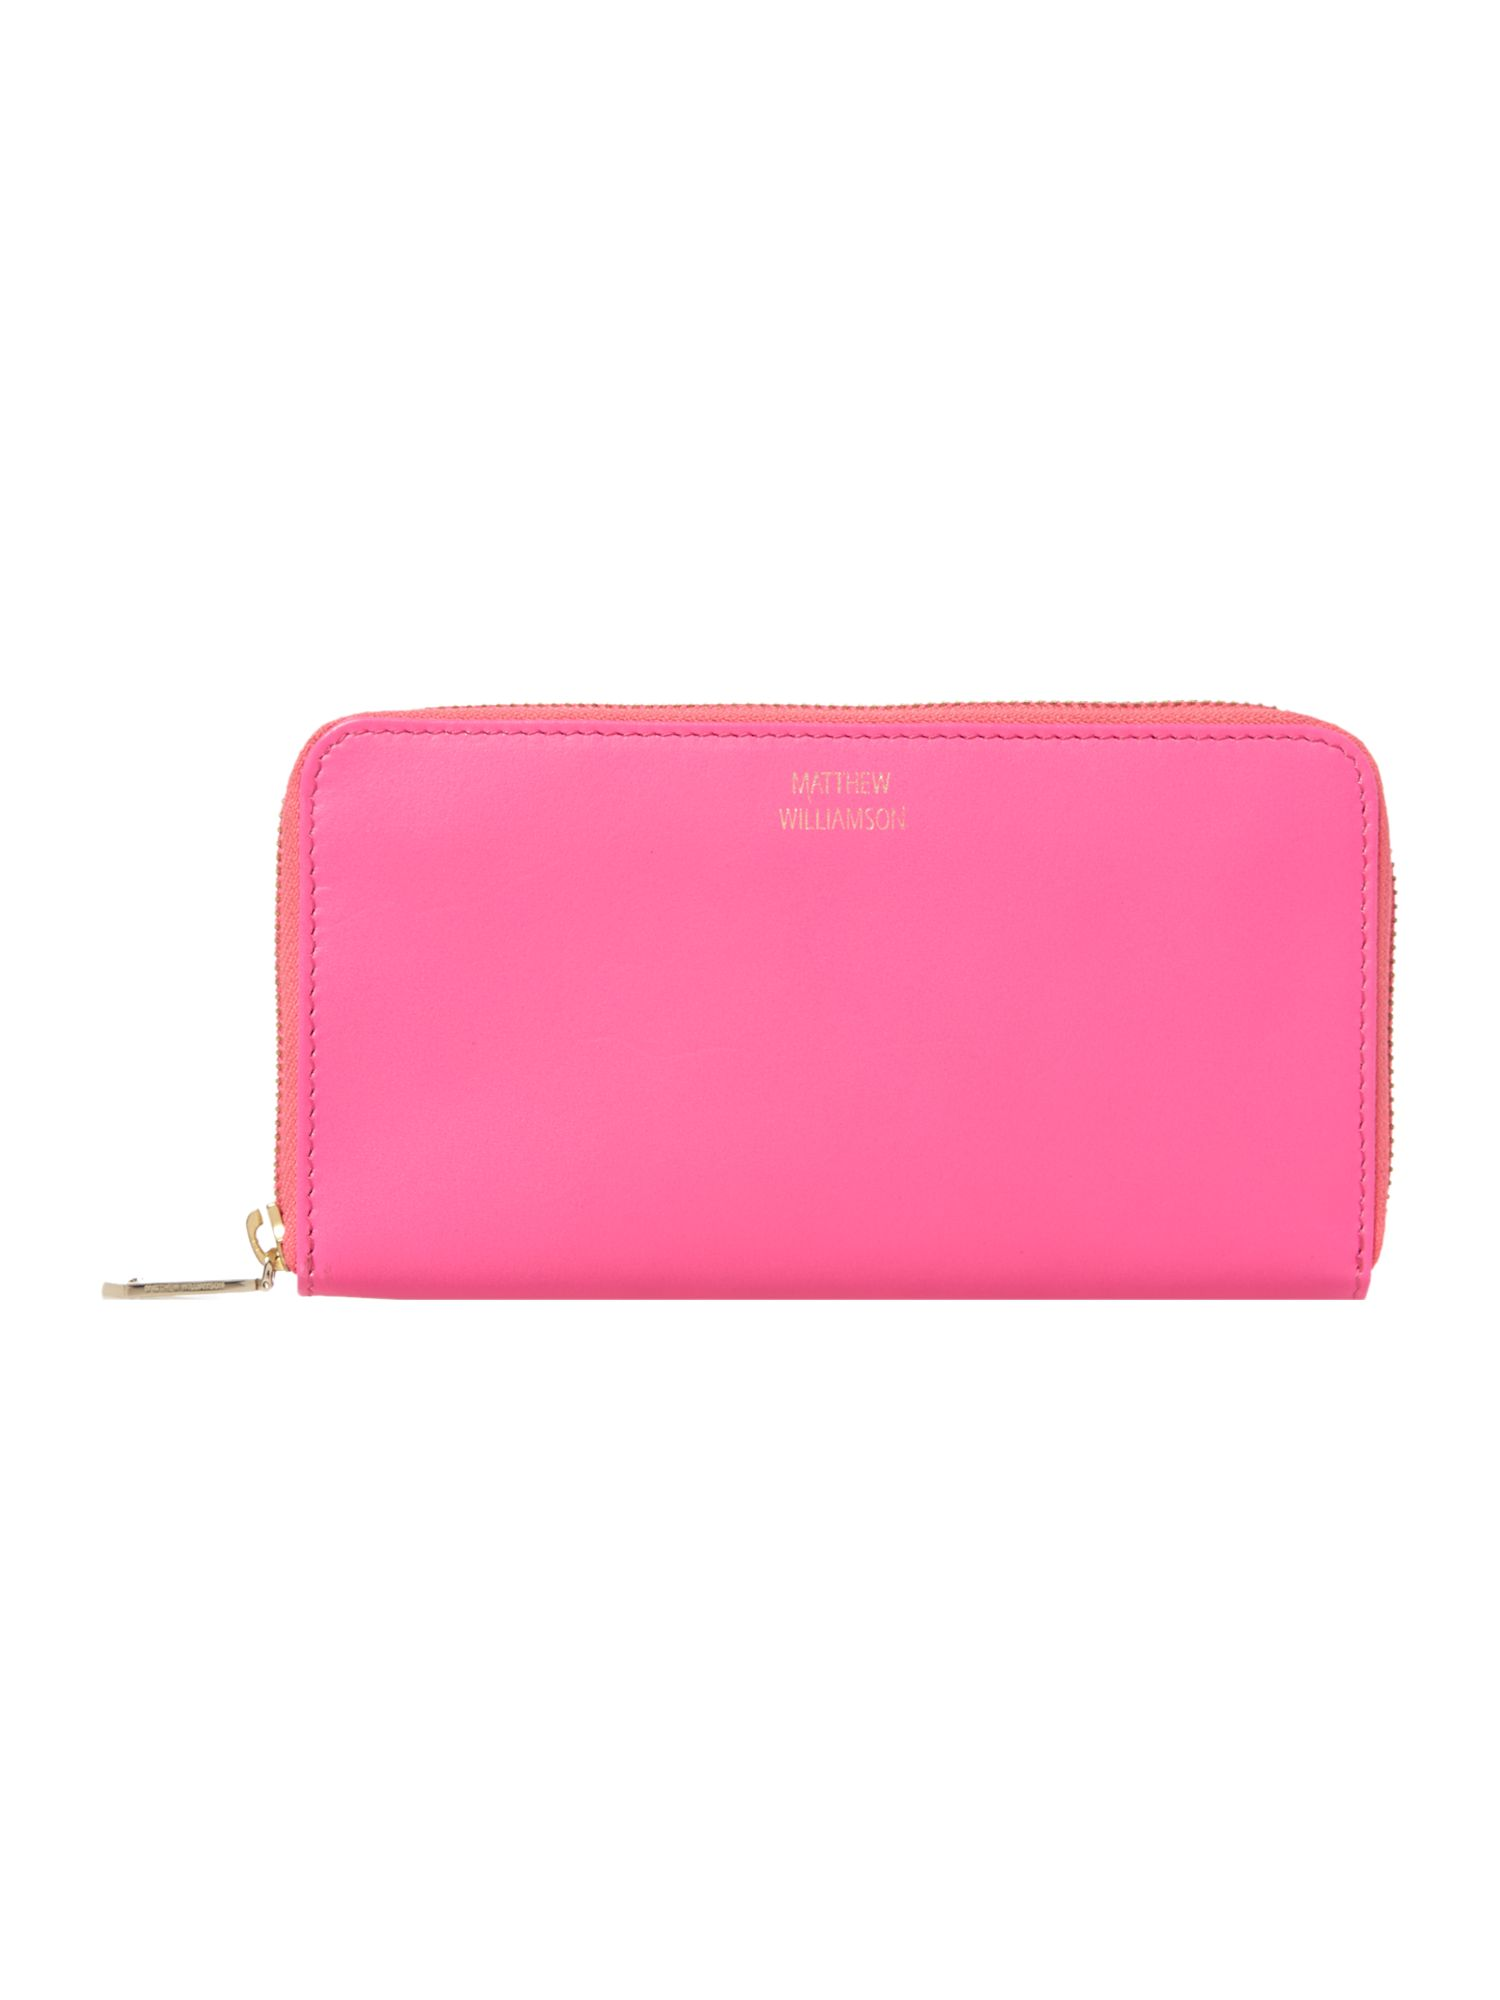 Nomad large pink zip around purse